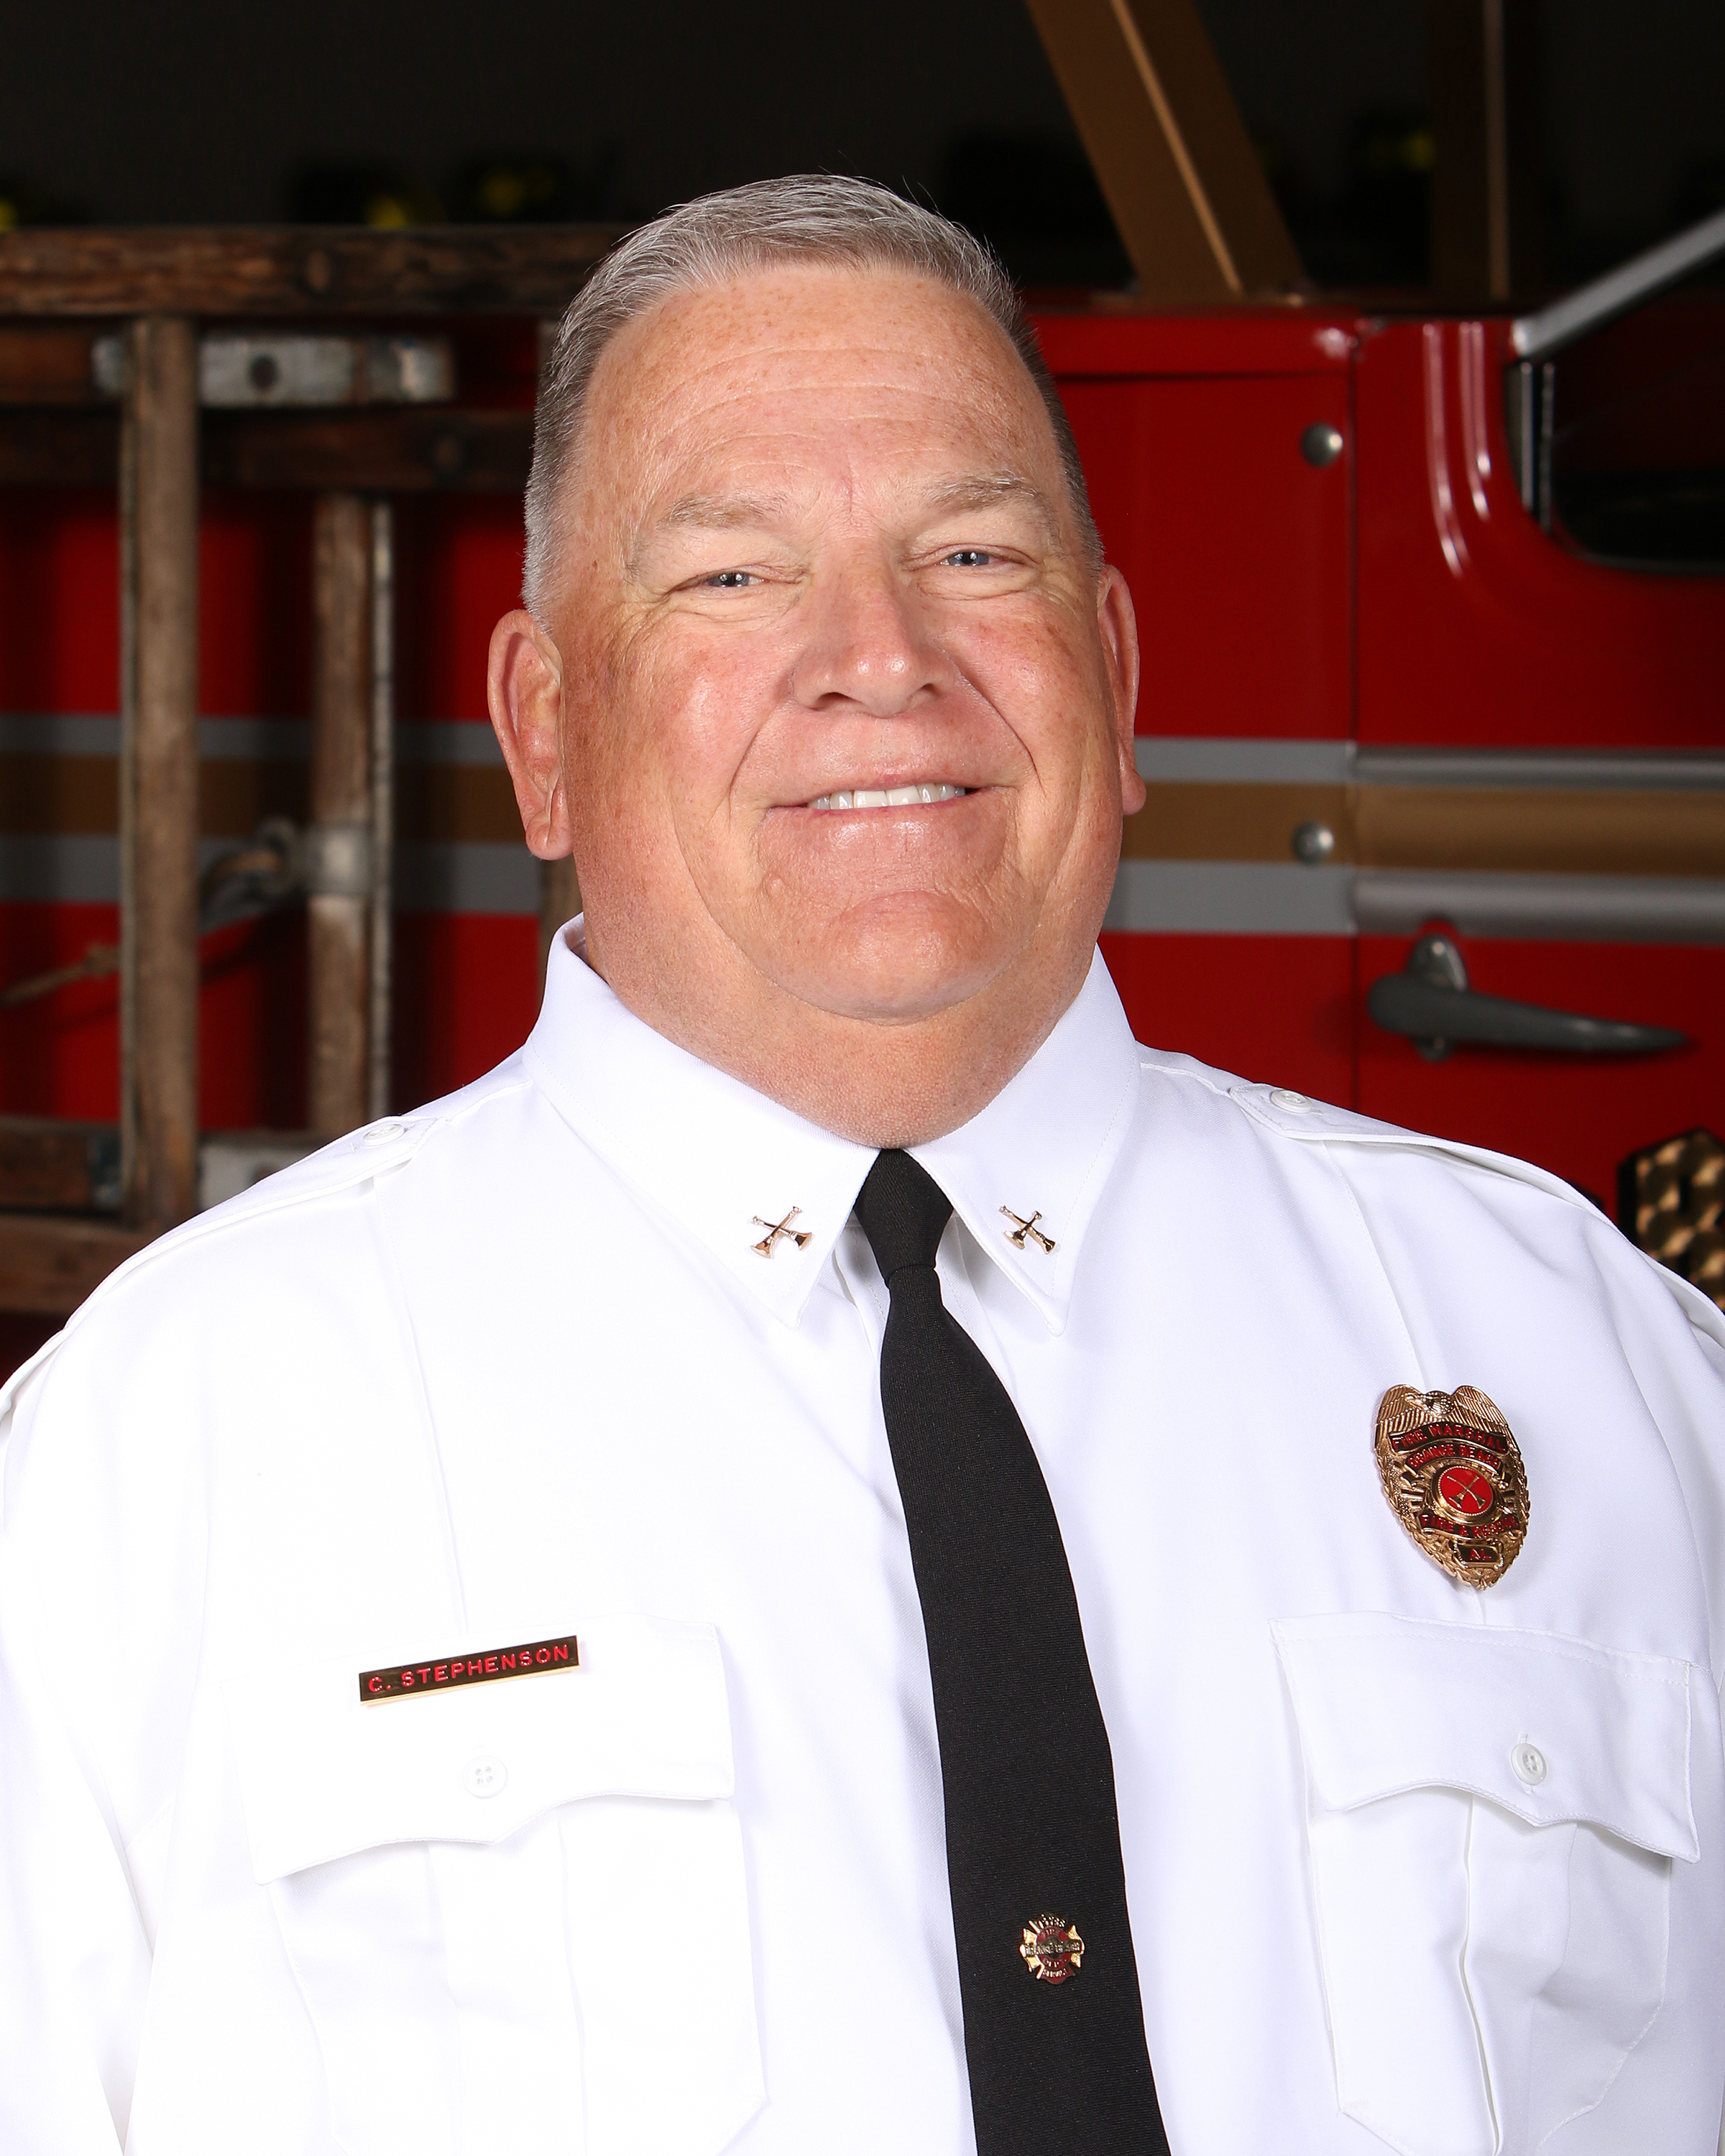 Orange Beach Fire Marshal Craig Stephenson